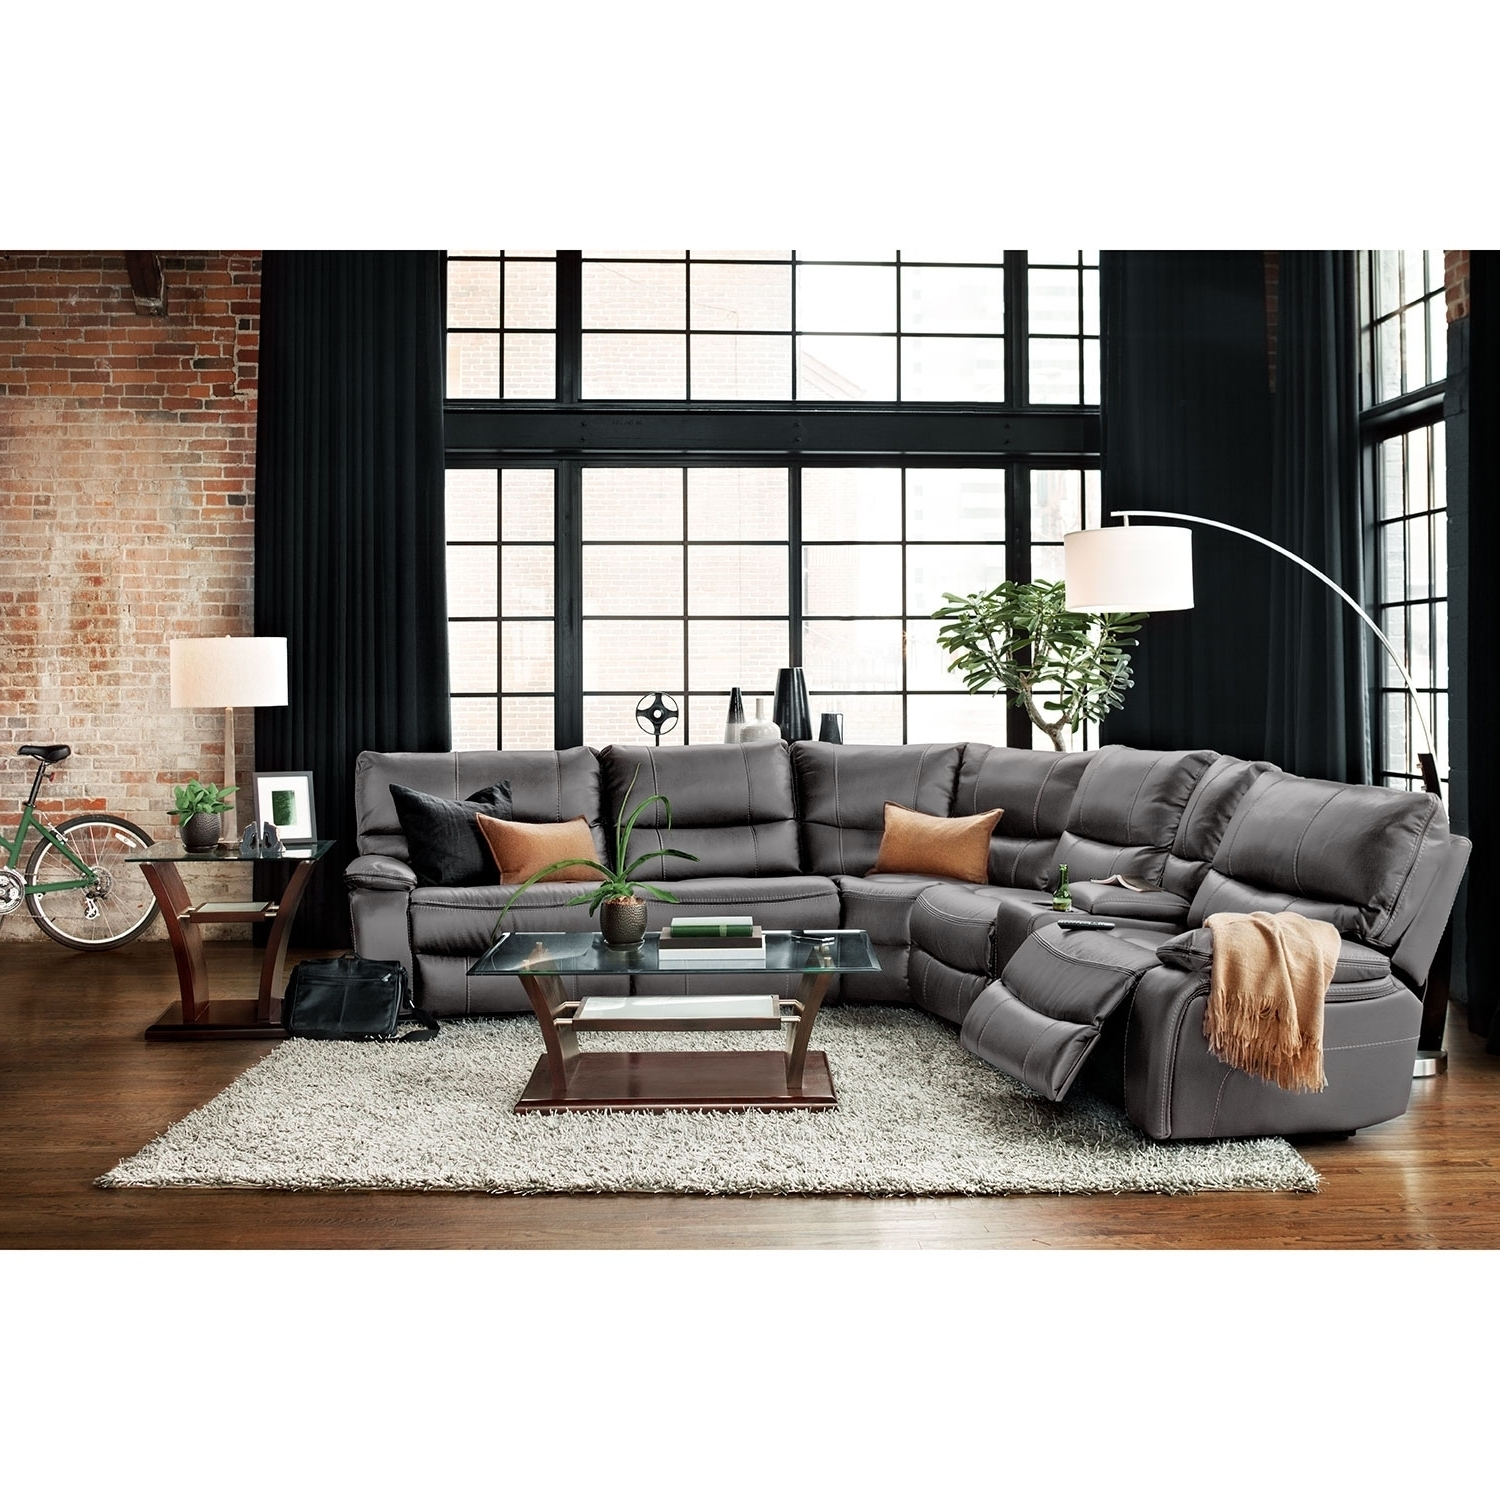 Orlando Sectional Sofas In Preferred Orlando 6 Piece Power Reclining Sectional With 1 Stationary Chair (View 7 of 20)